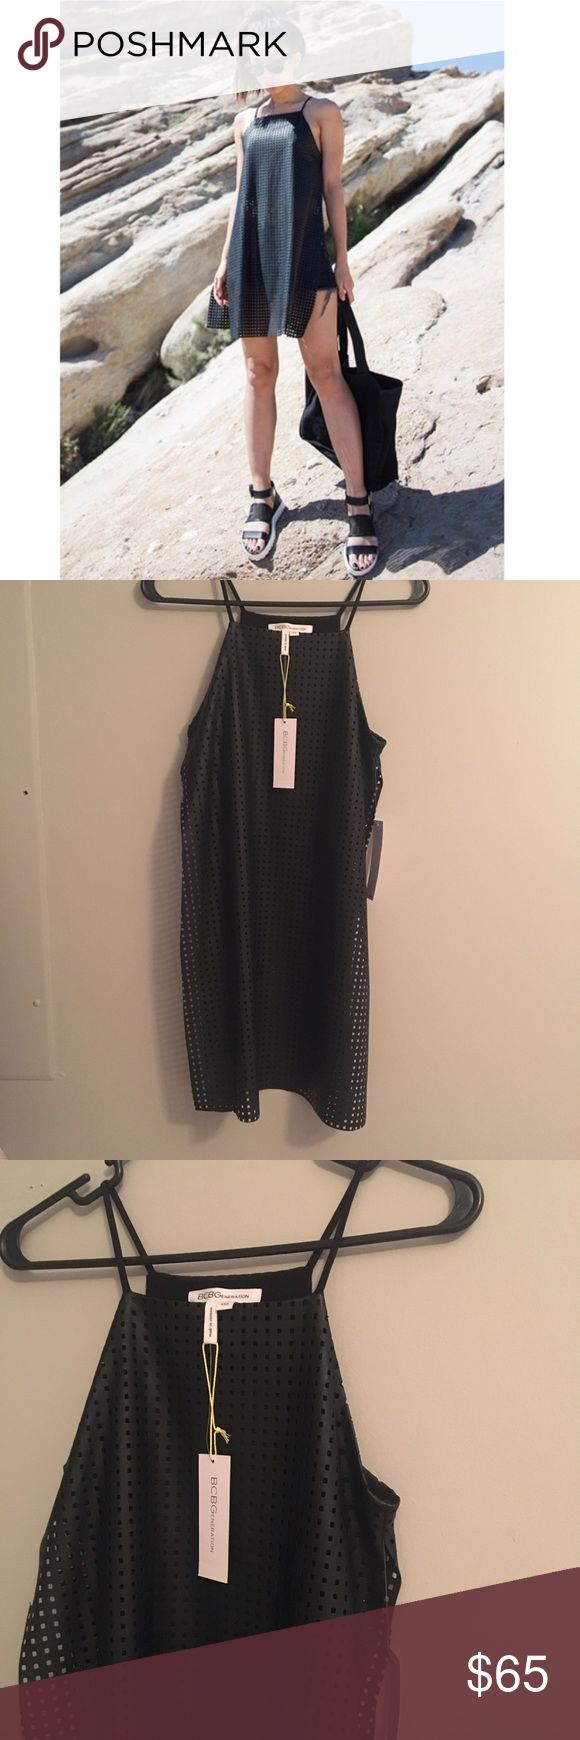 BCBGeneration Top Brand new BCBGeneration top, never worn. Perfect condition with tags attached! Offers accepted! BCBGeneration Tops